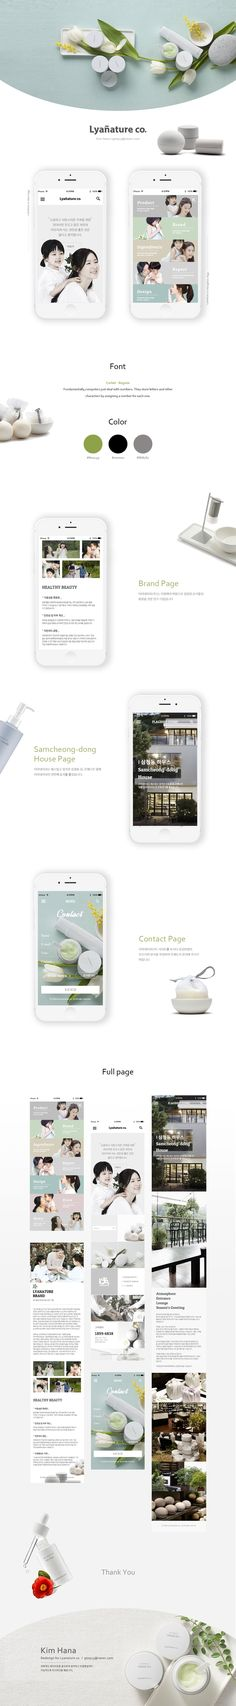 Lyanature mobile Redesign - Designer - Kim-hana on Behance